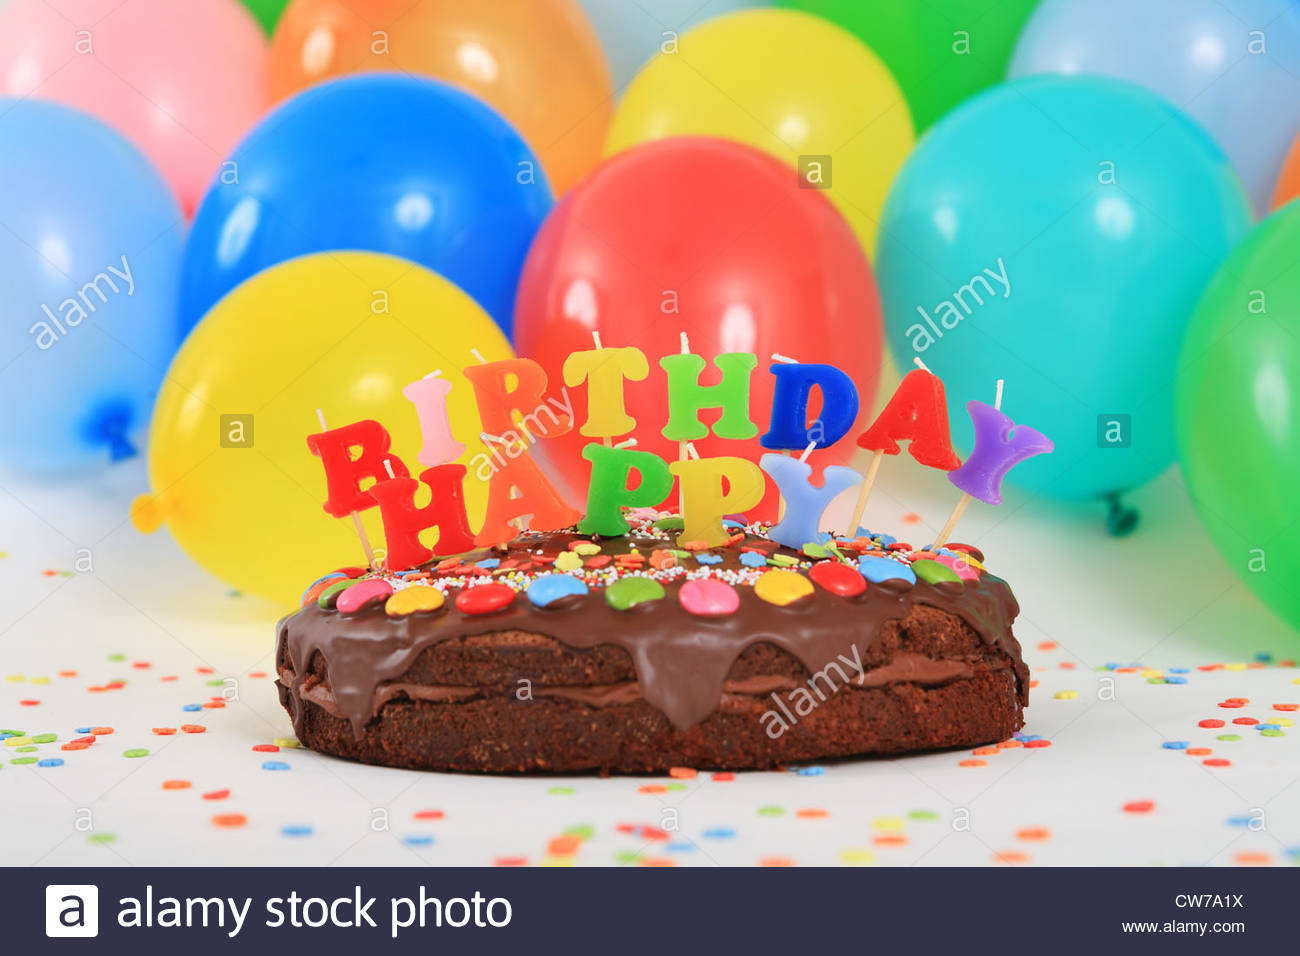 Balloon Birthday Cake Happy Birthday Chocolate Cake With Candles And Balloons Stock Photo